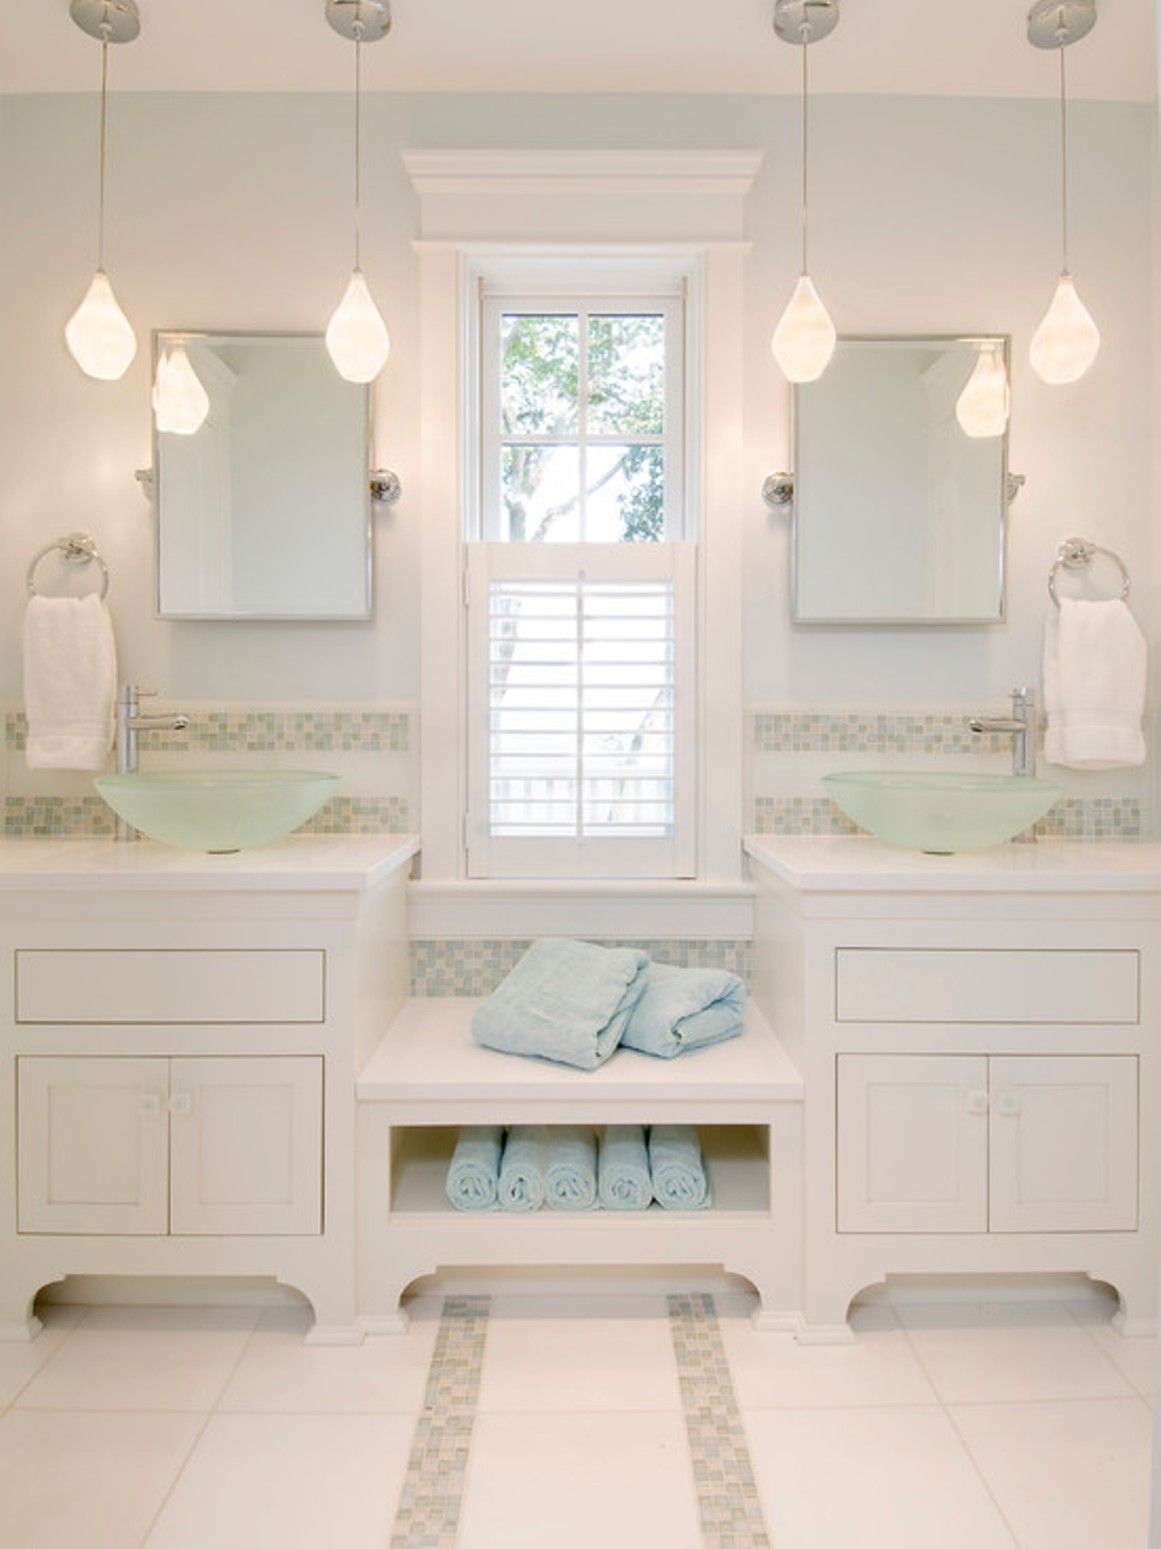 Bathroom Vanity Lighting Guide best pendant lighting bathroom vanity for awesome nuance : white